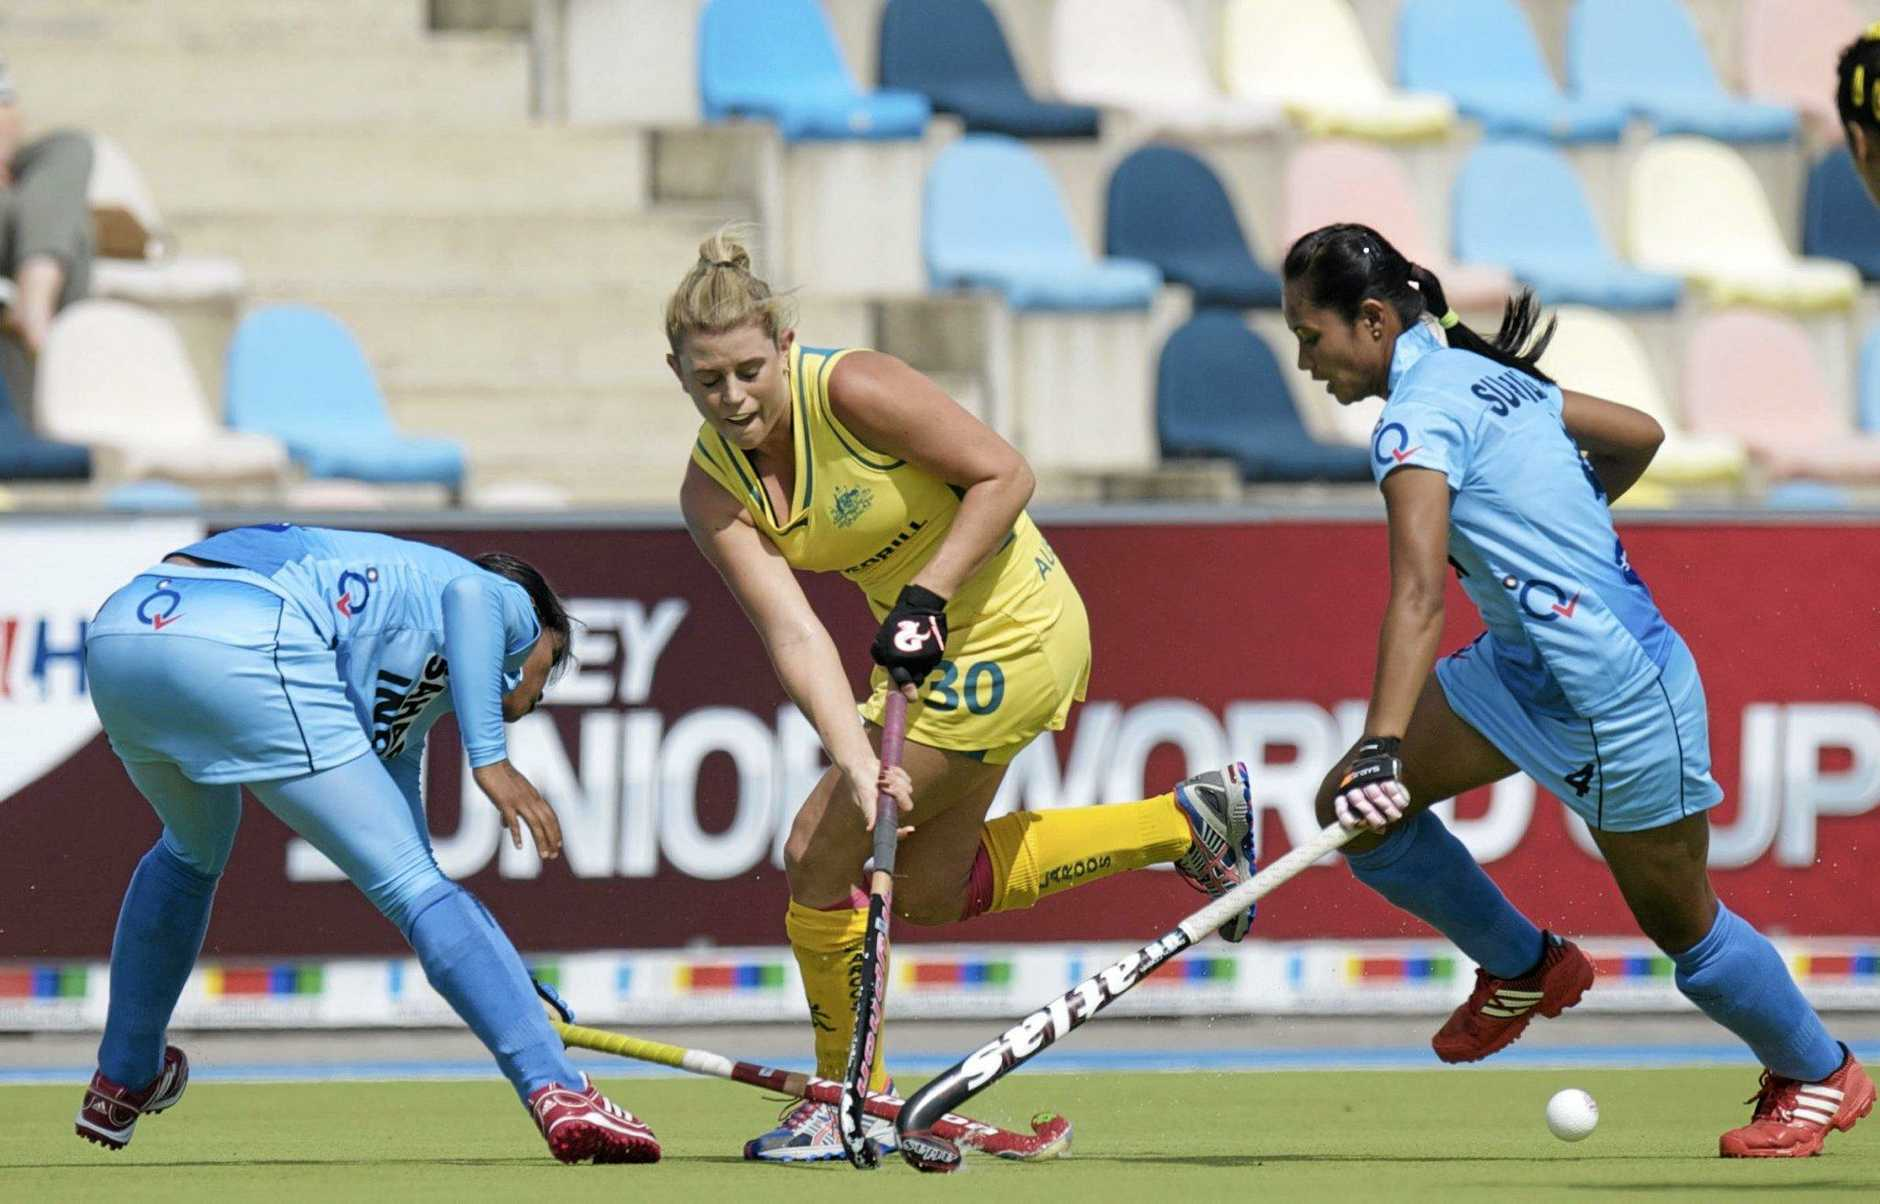 Ipswich hockey player Jordyn Holzberger representing Australia against India at the 2013 Junior World Cup.